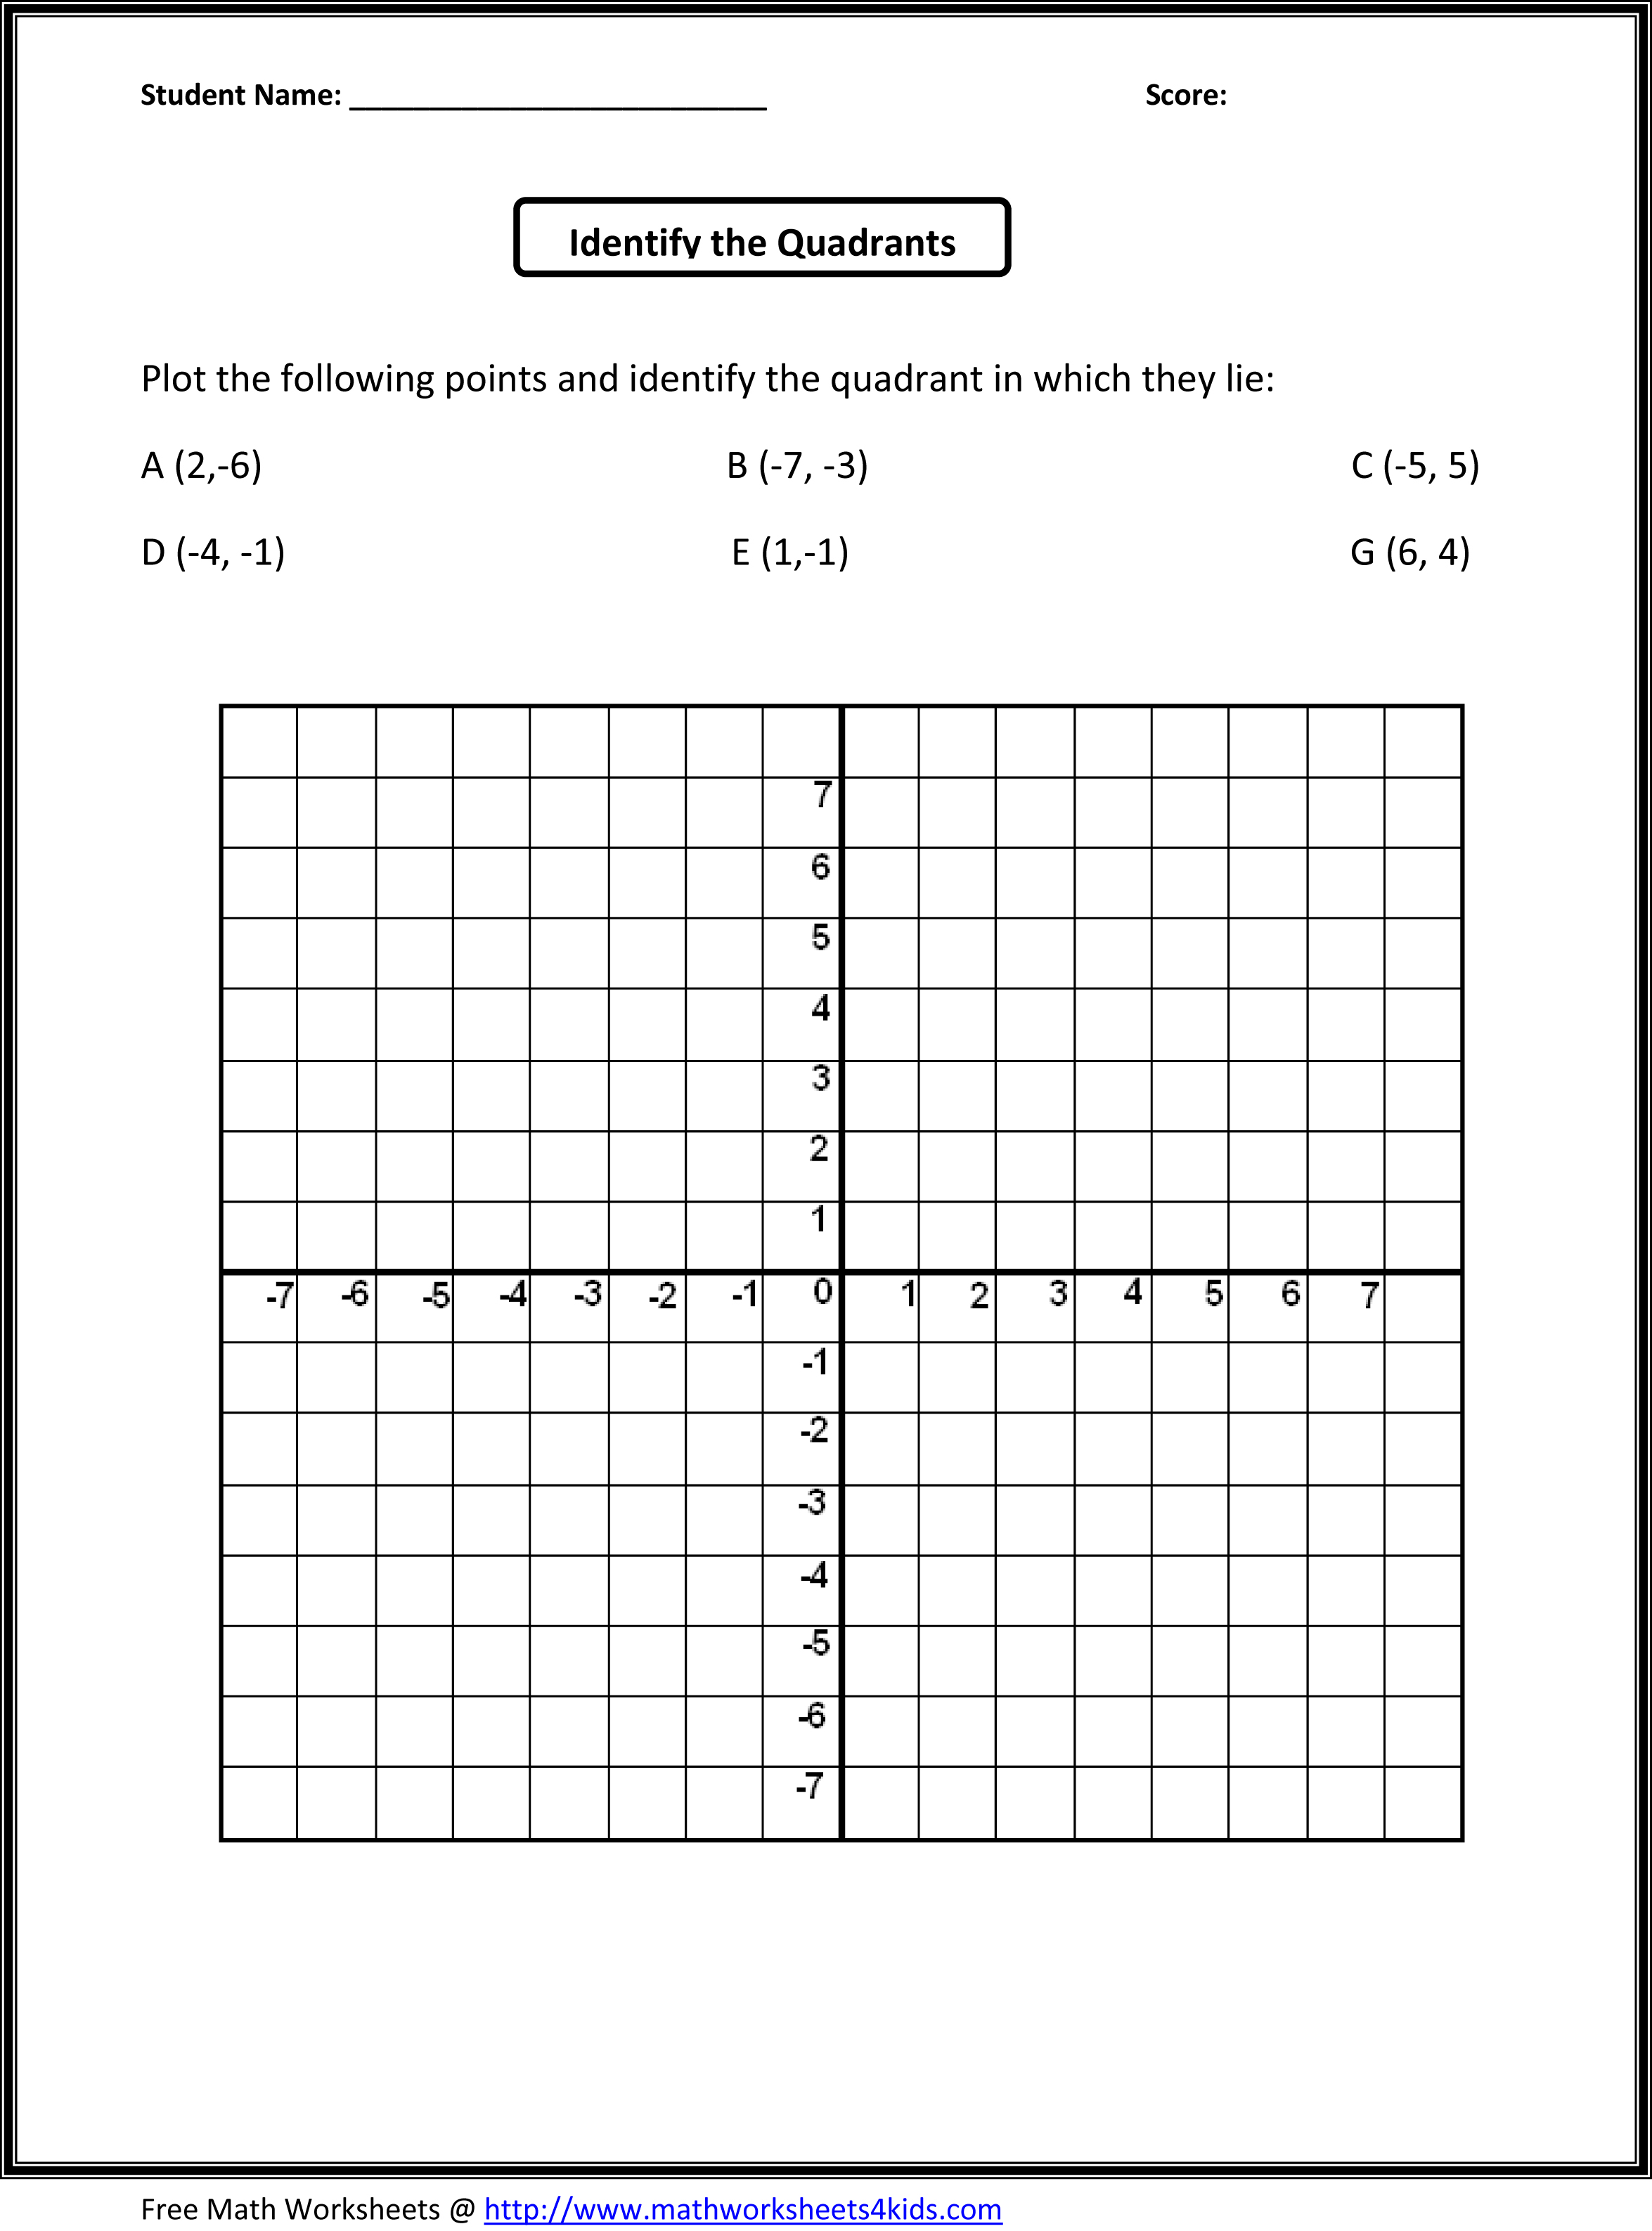 Free Worksheet Language Arts Worksheets 5th Grade language arts 5th grade worksheets abitlikethis fifth math worksheets